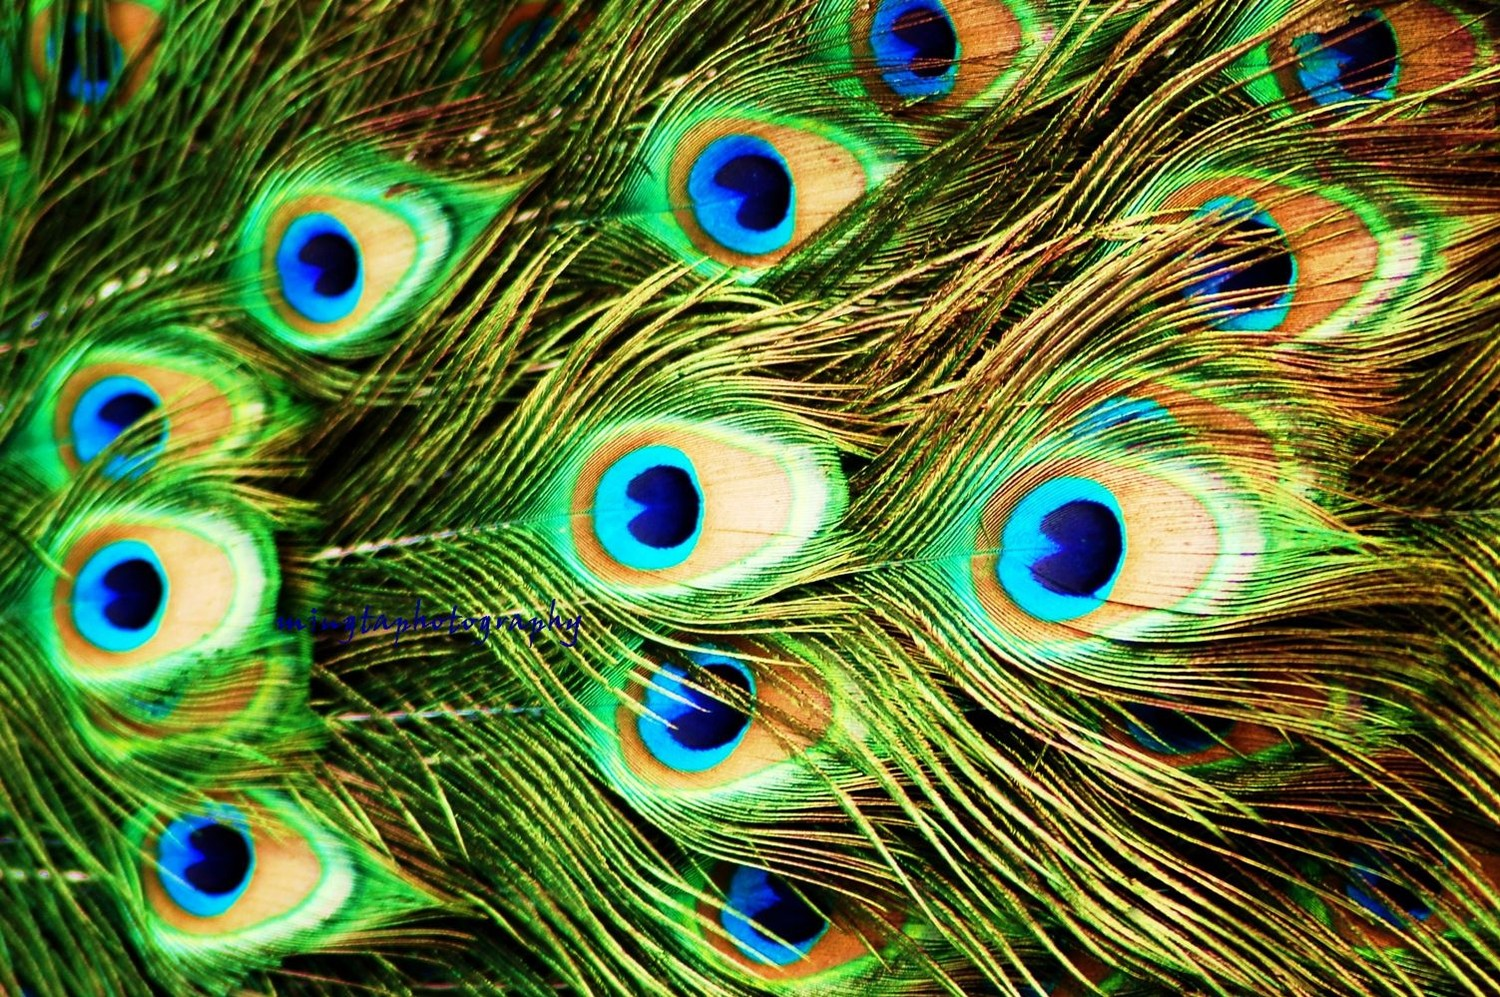 Peacock Feathers HD Wallpapers Pictures Images Backgrounds 1500x997